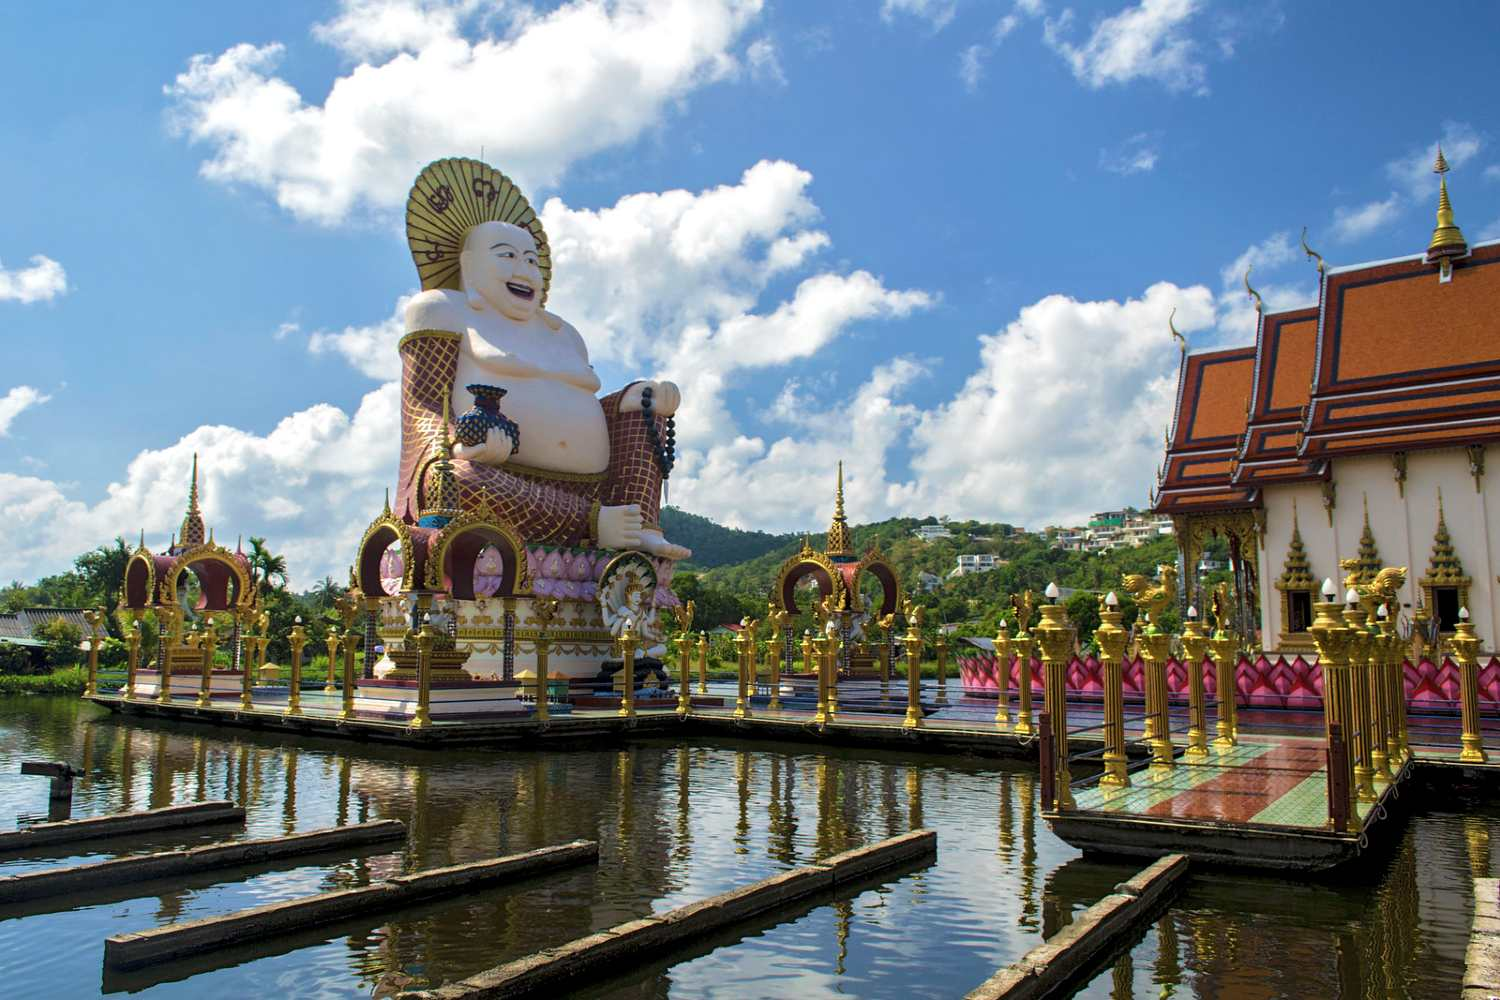 The pond and the laughing Buddha on the temple complex of the Wat Plai Laem on Koh Samui